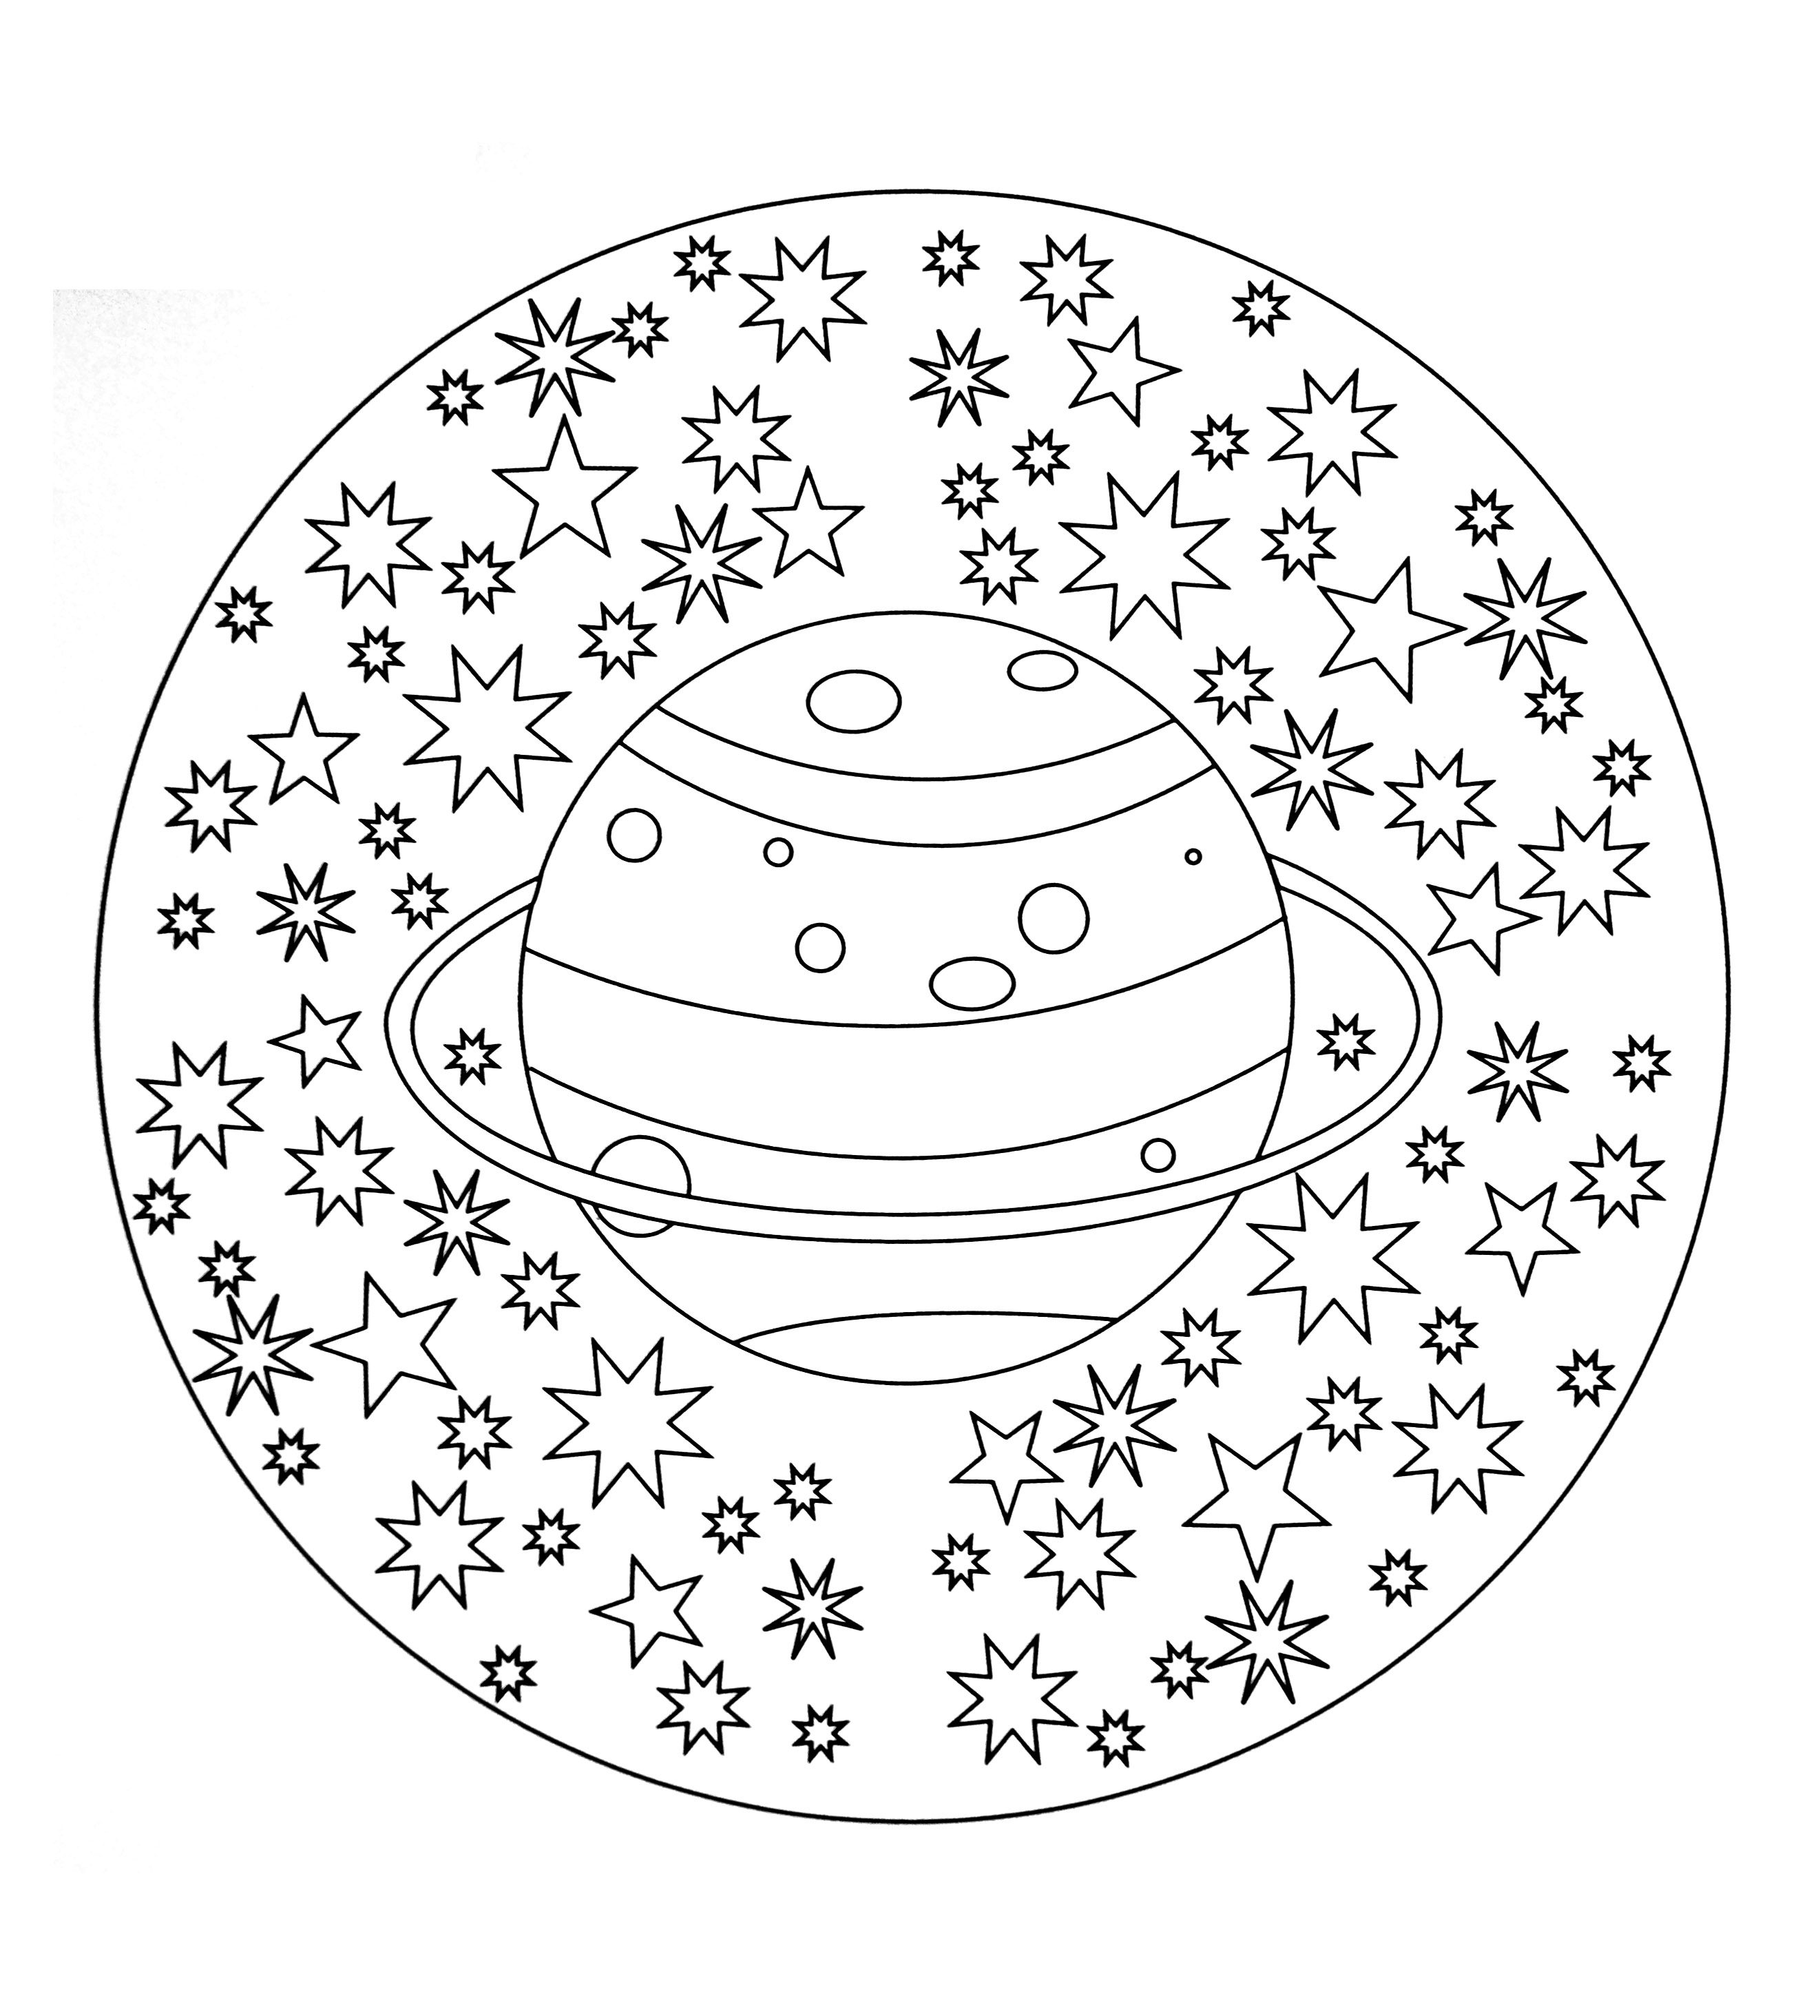 printable indian mandalas coloring pages - photo#34